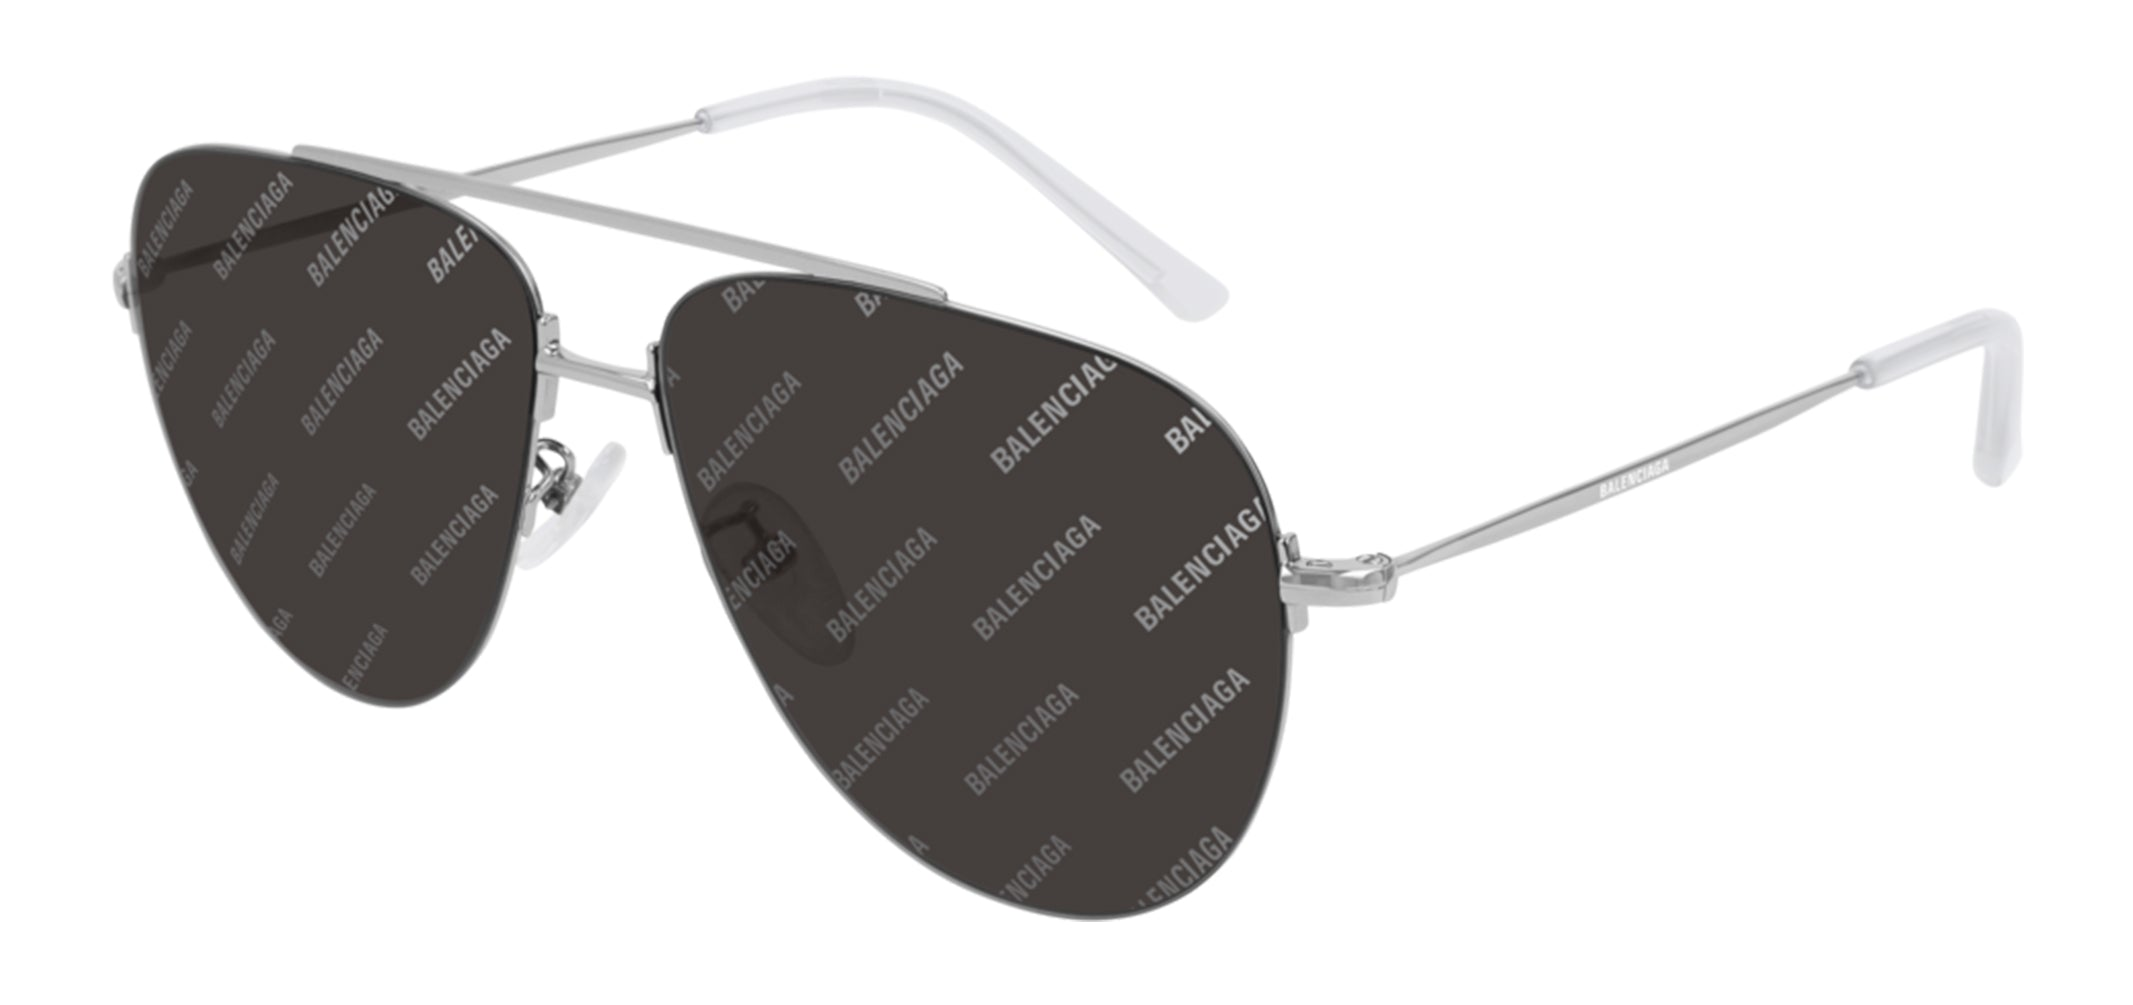 Balenciaga Holly Eyewear Aviator